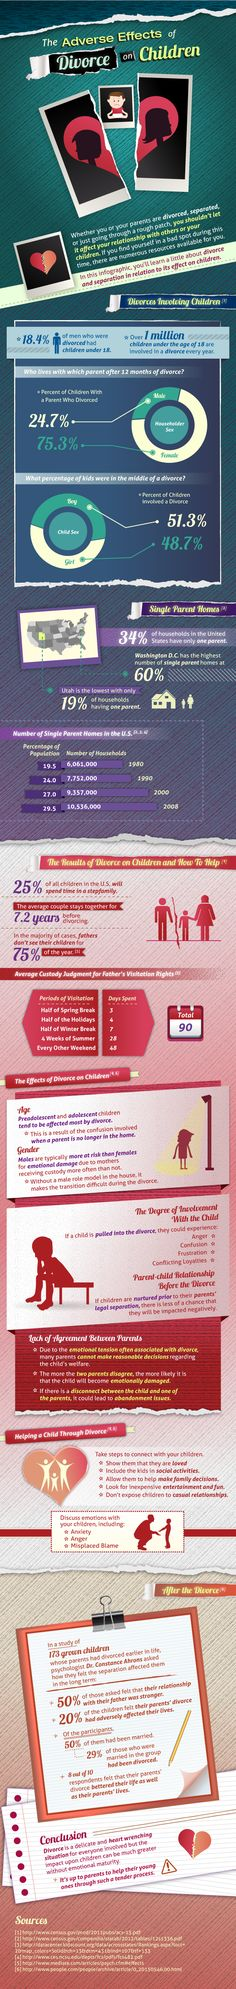 Adverse Effects of Divorce on Children [by Total Divorce -- via #tipsographic]. More at tipsographic.com